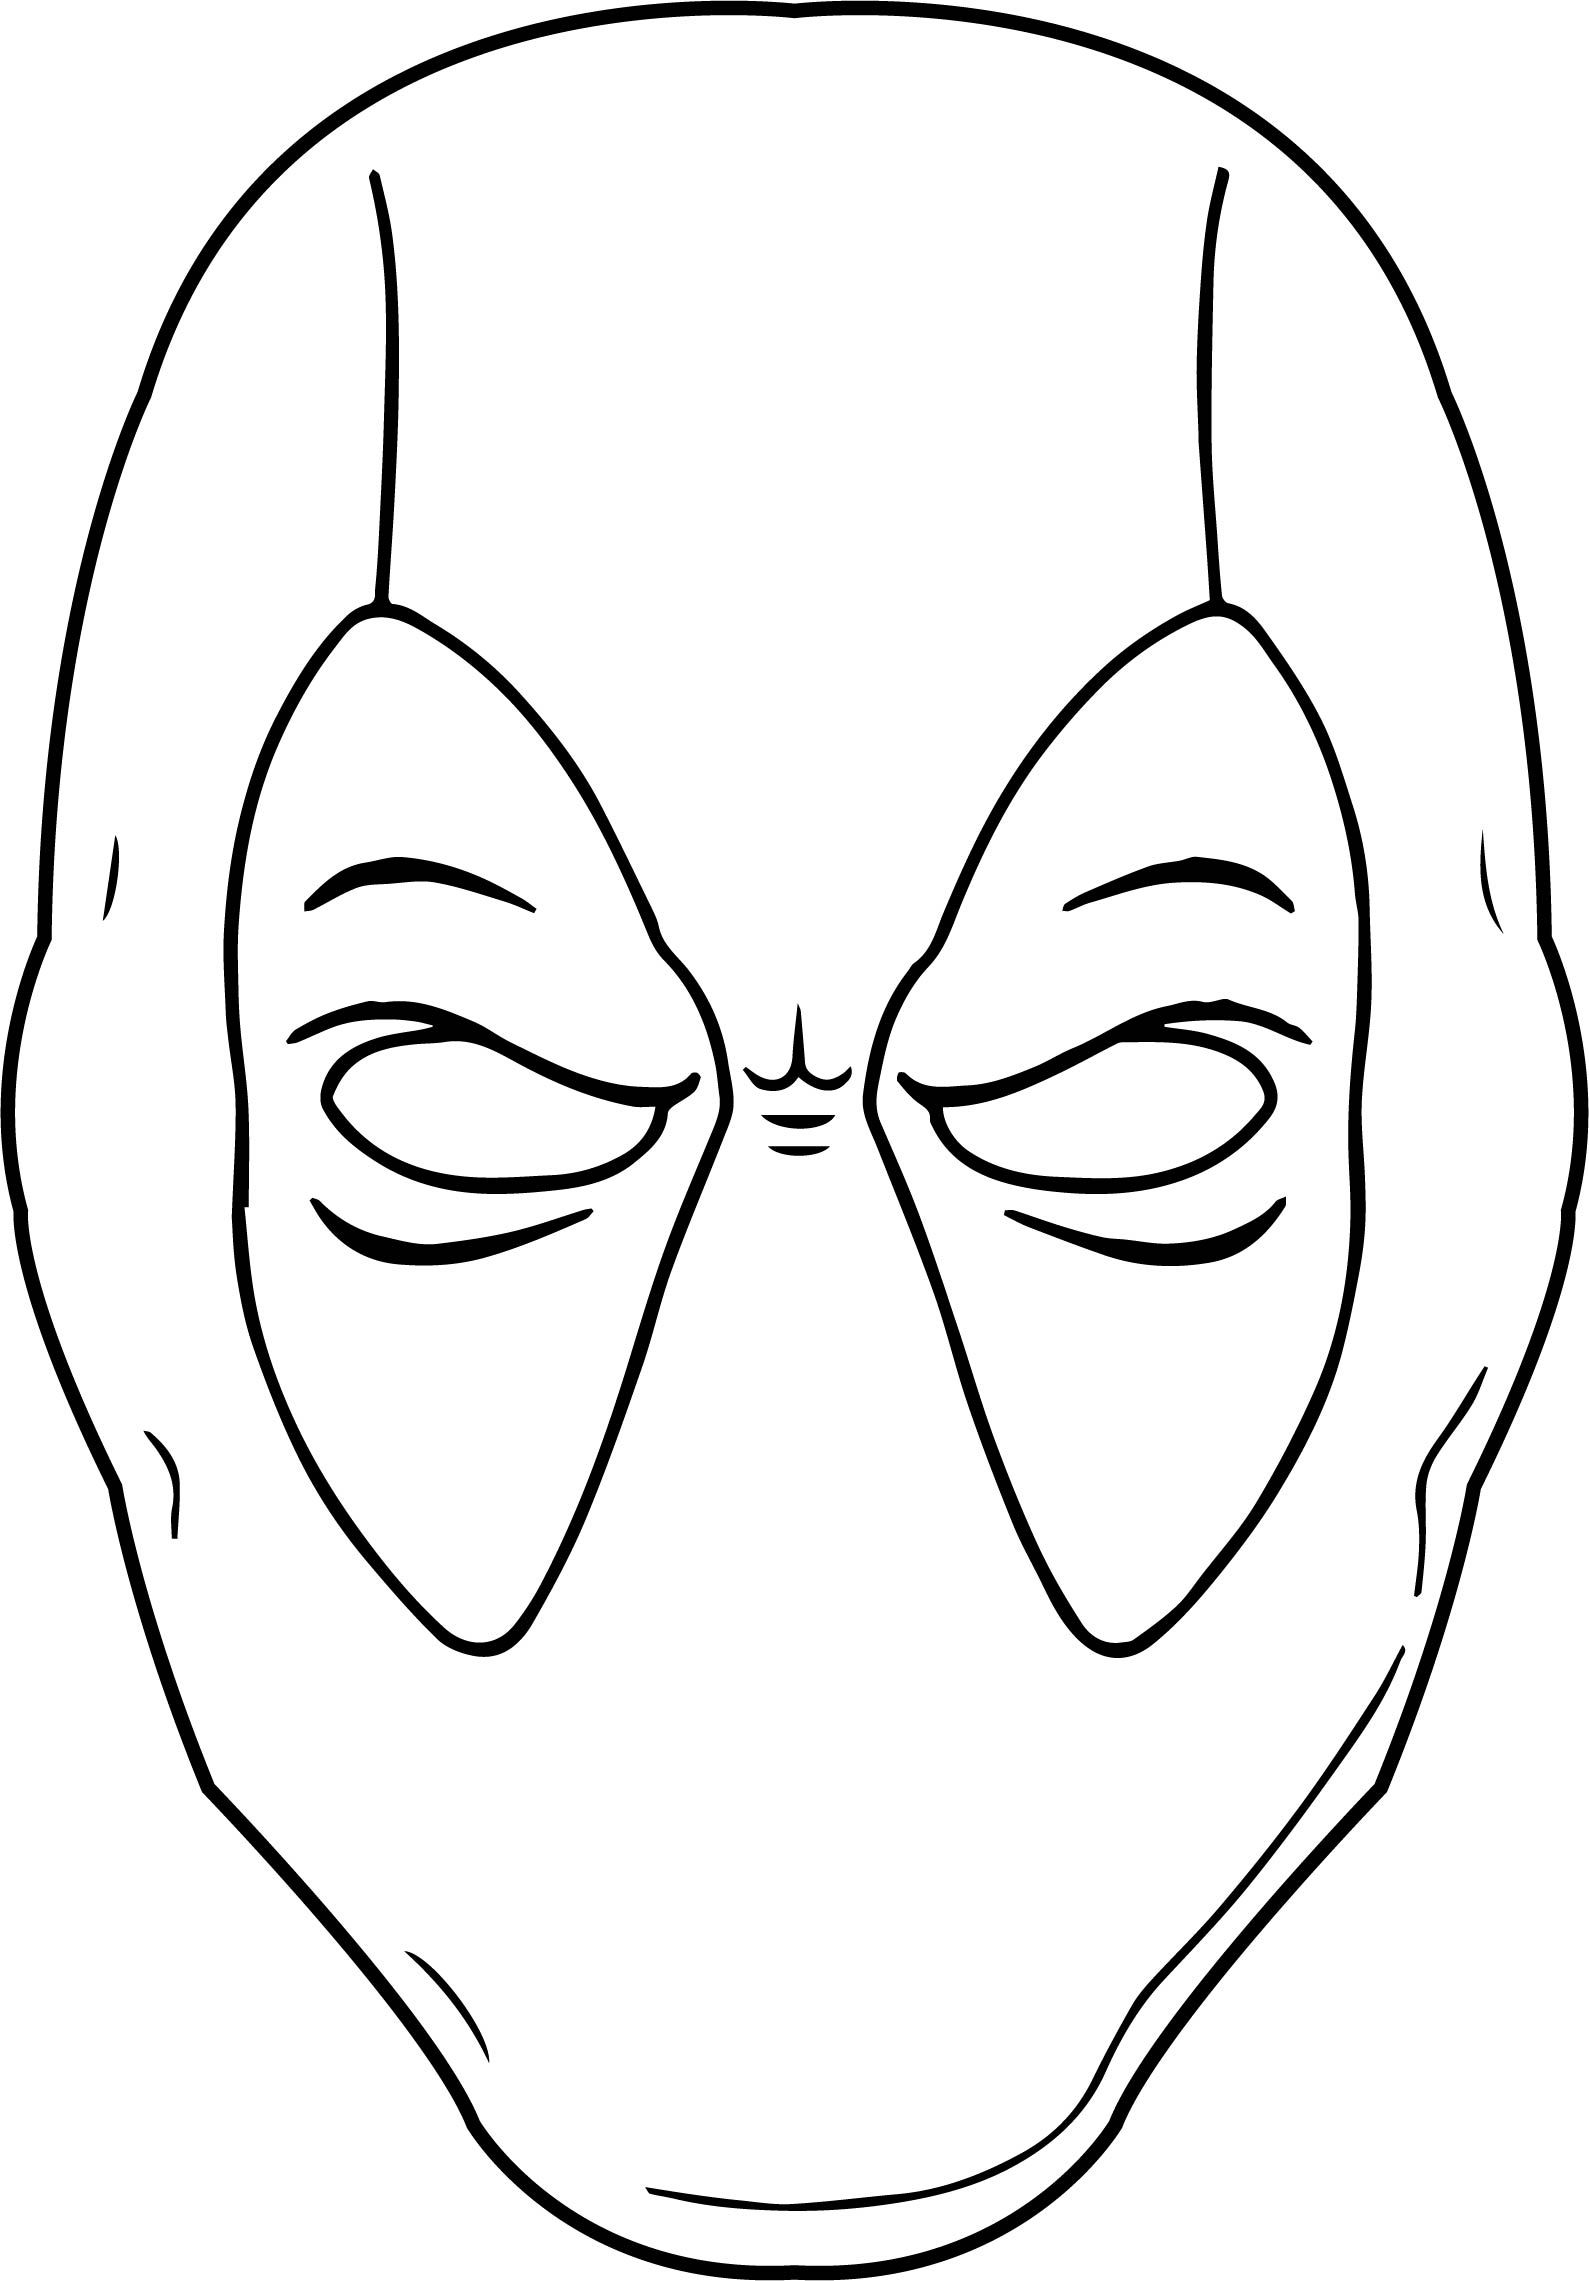 Simple Deadpool Mask Coloring Page Chibi Coloring Pages Love Coloring Pages Cute Coloring Pages